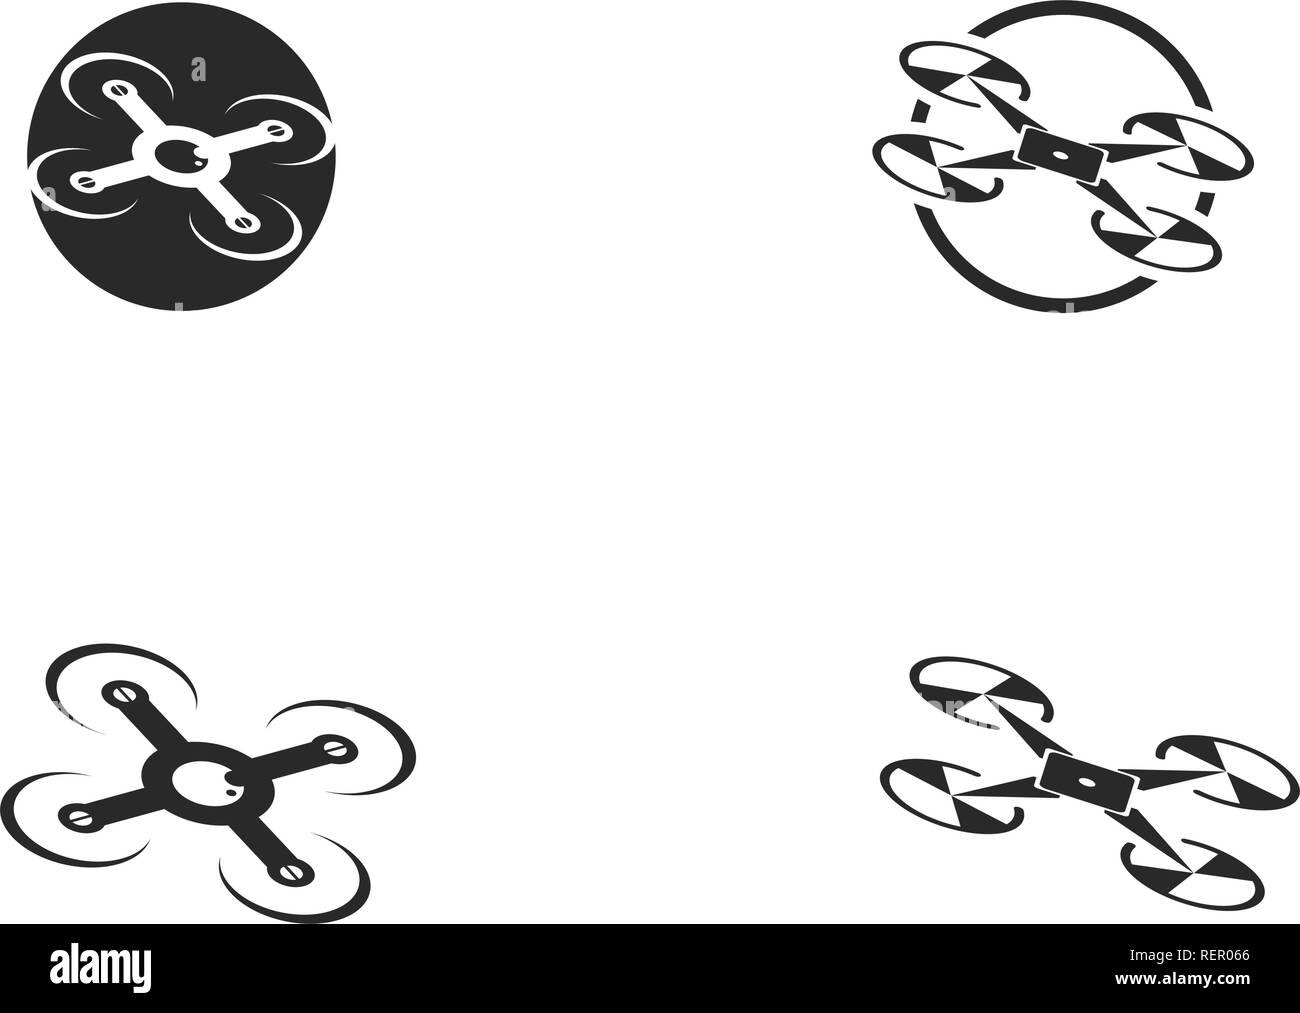 Drone logo and symbol vector - Stock Image